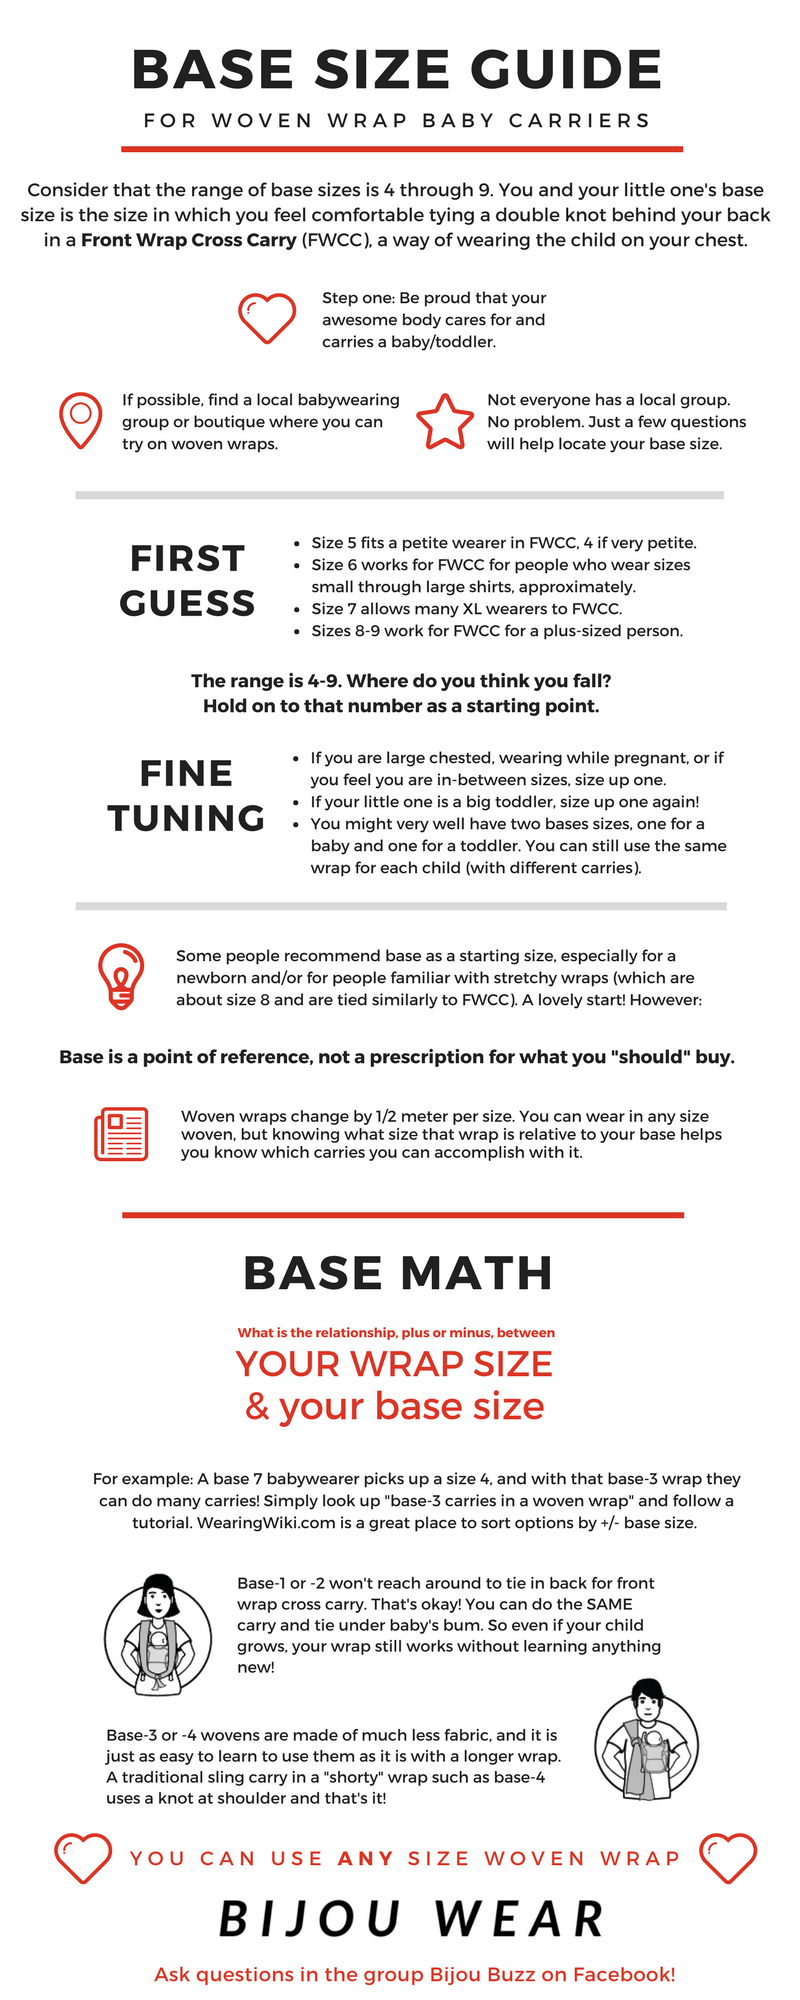 Base Size Guide For Babywearing In A Woven Wrap By Bijou Wear